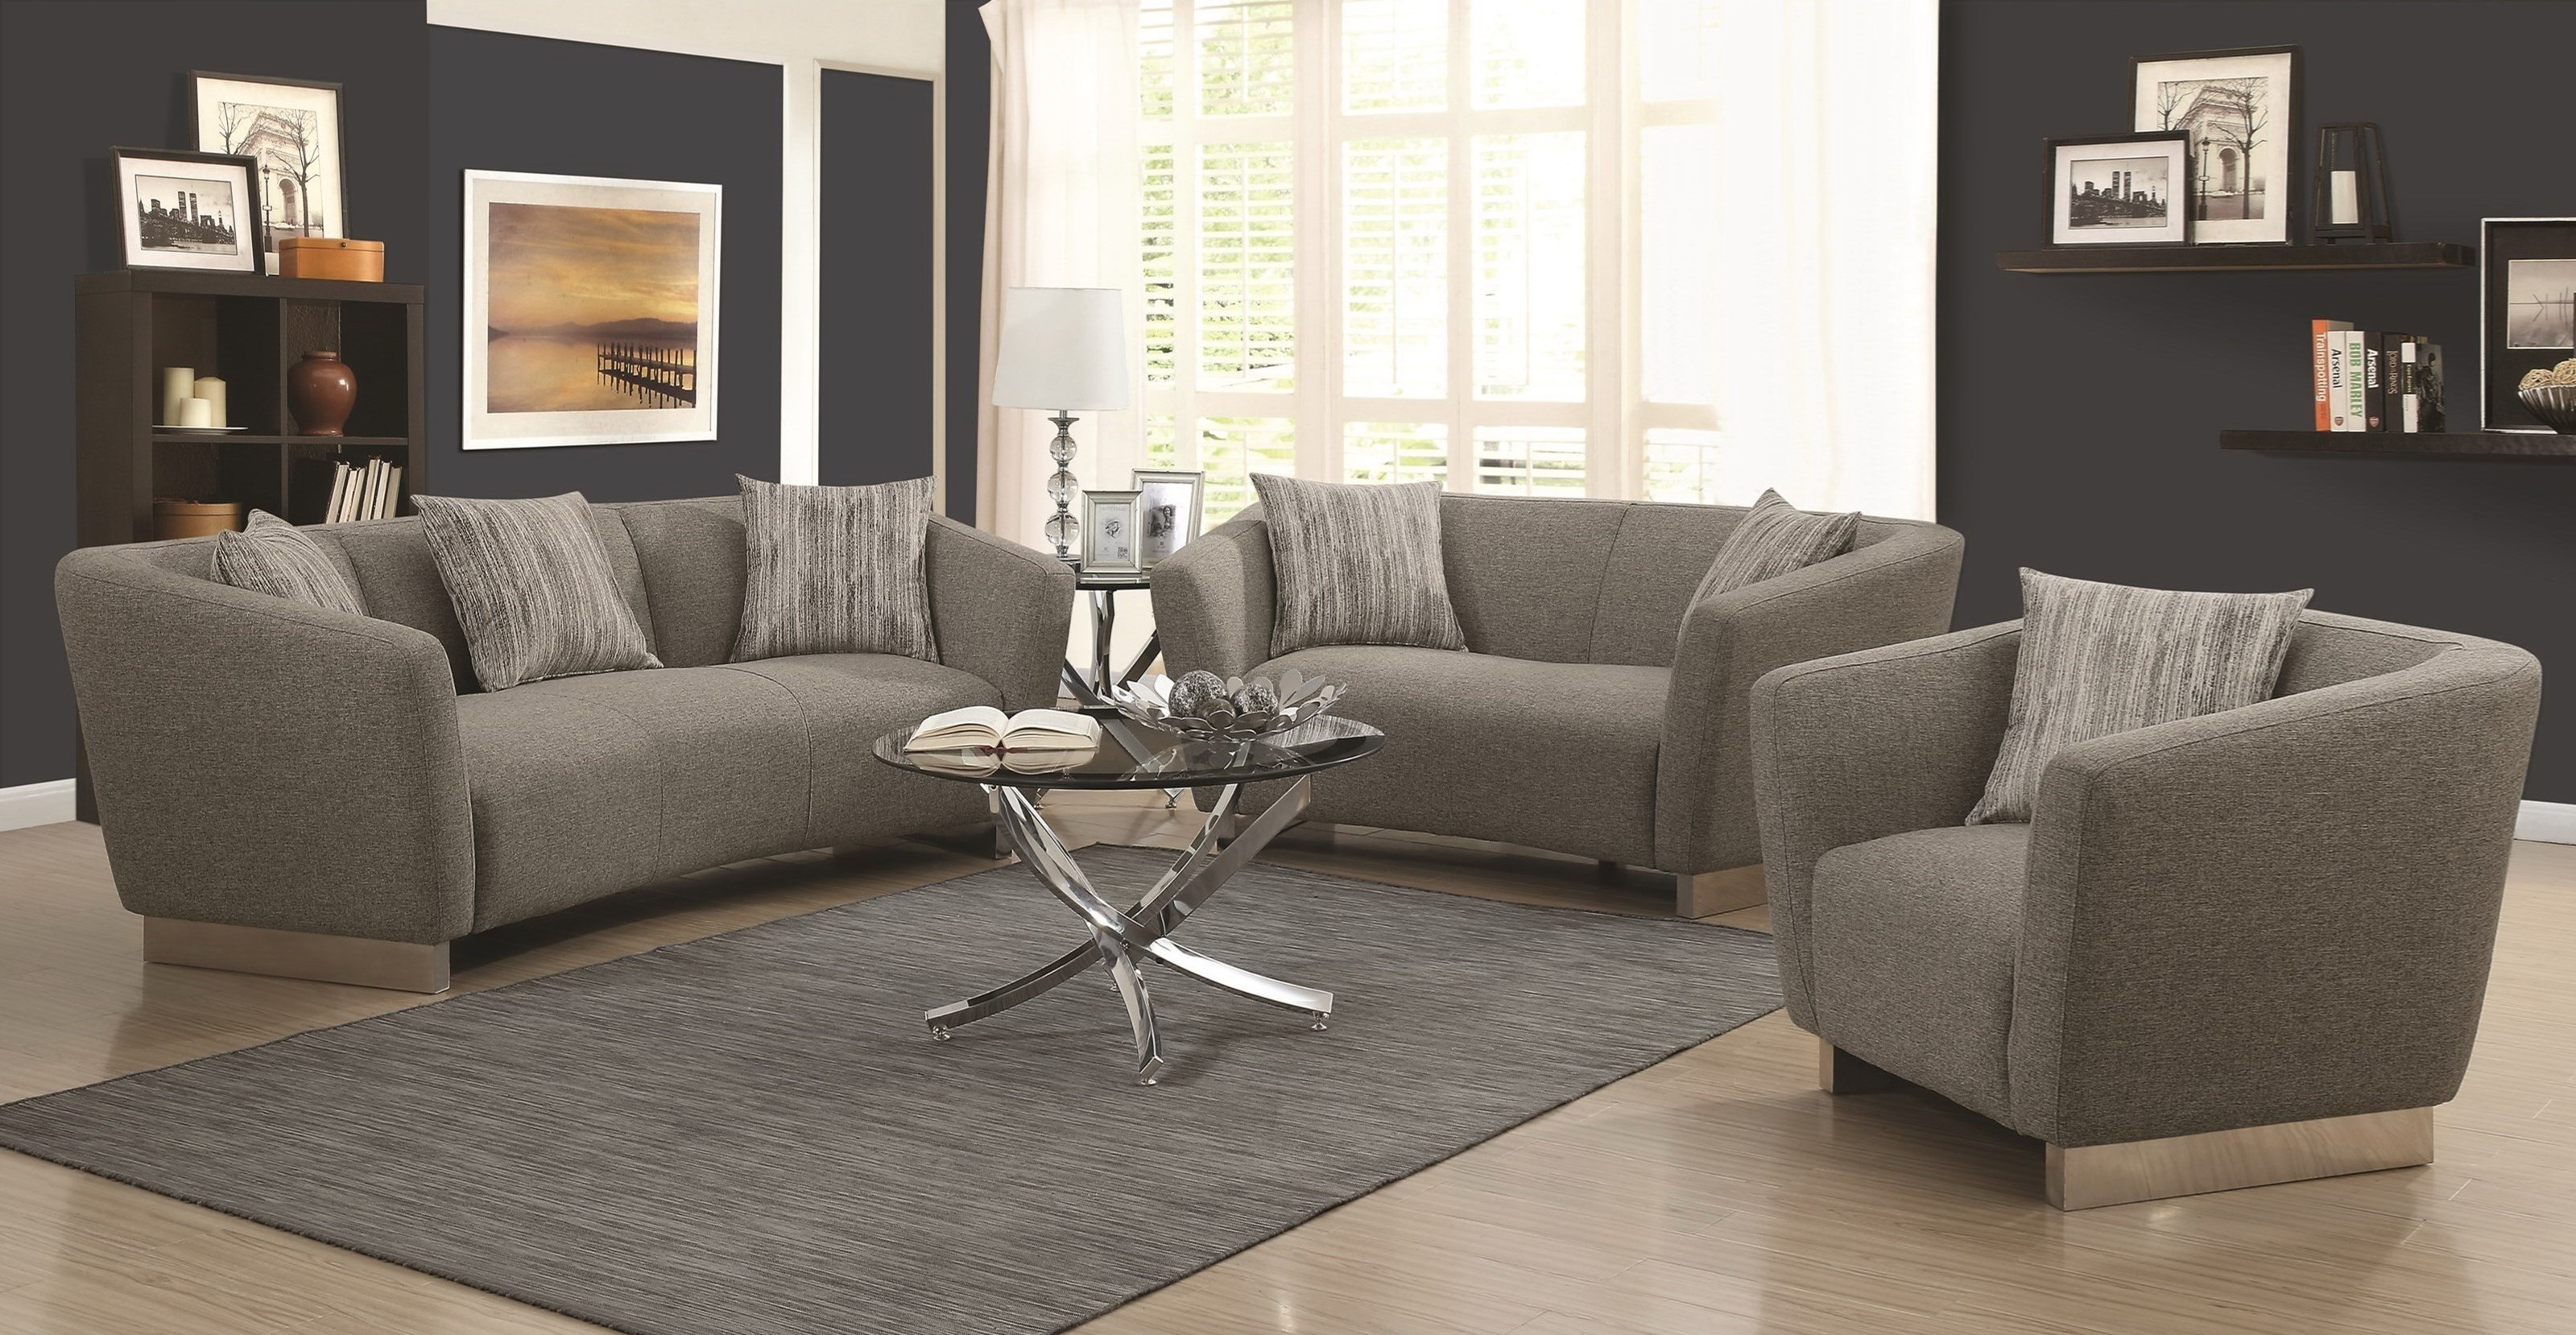 grayson sofa bed sterling cognac brown italian leather and loveseat stationary living room collection las vegas